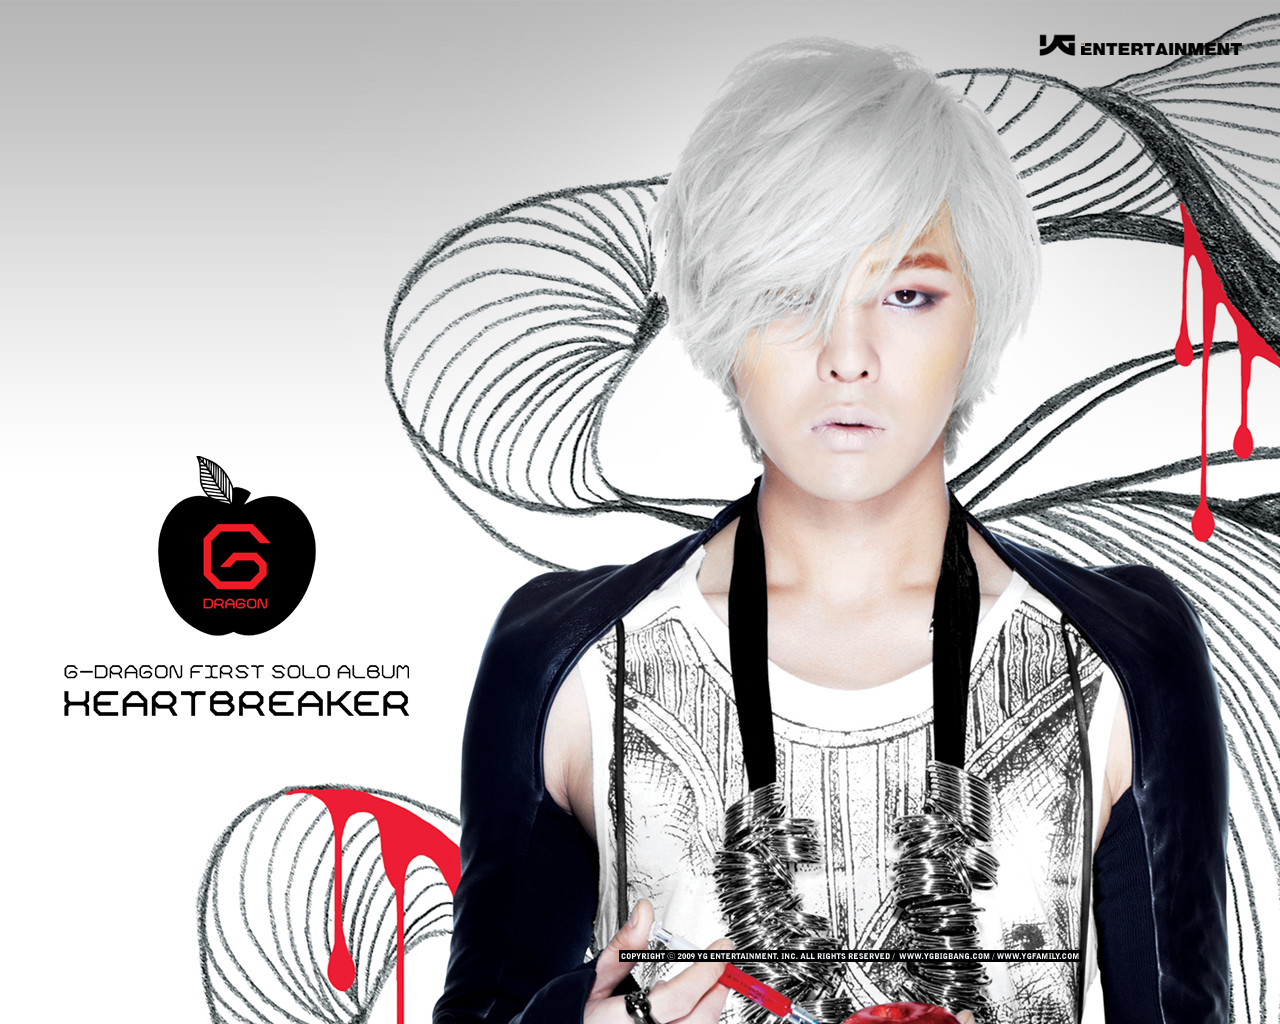 Heartbreaker Wallpaper   GD Wallpaper 31865677 1280x1024